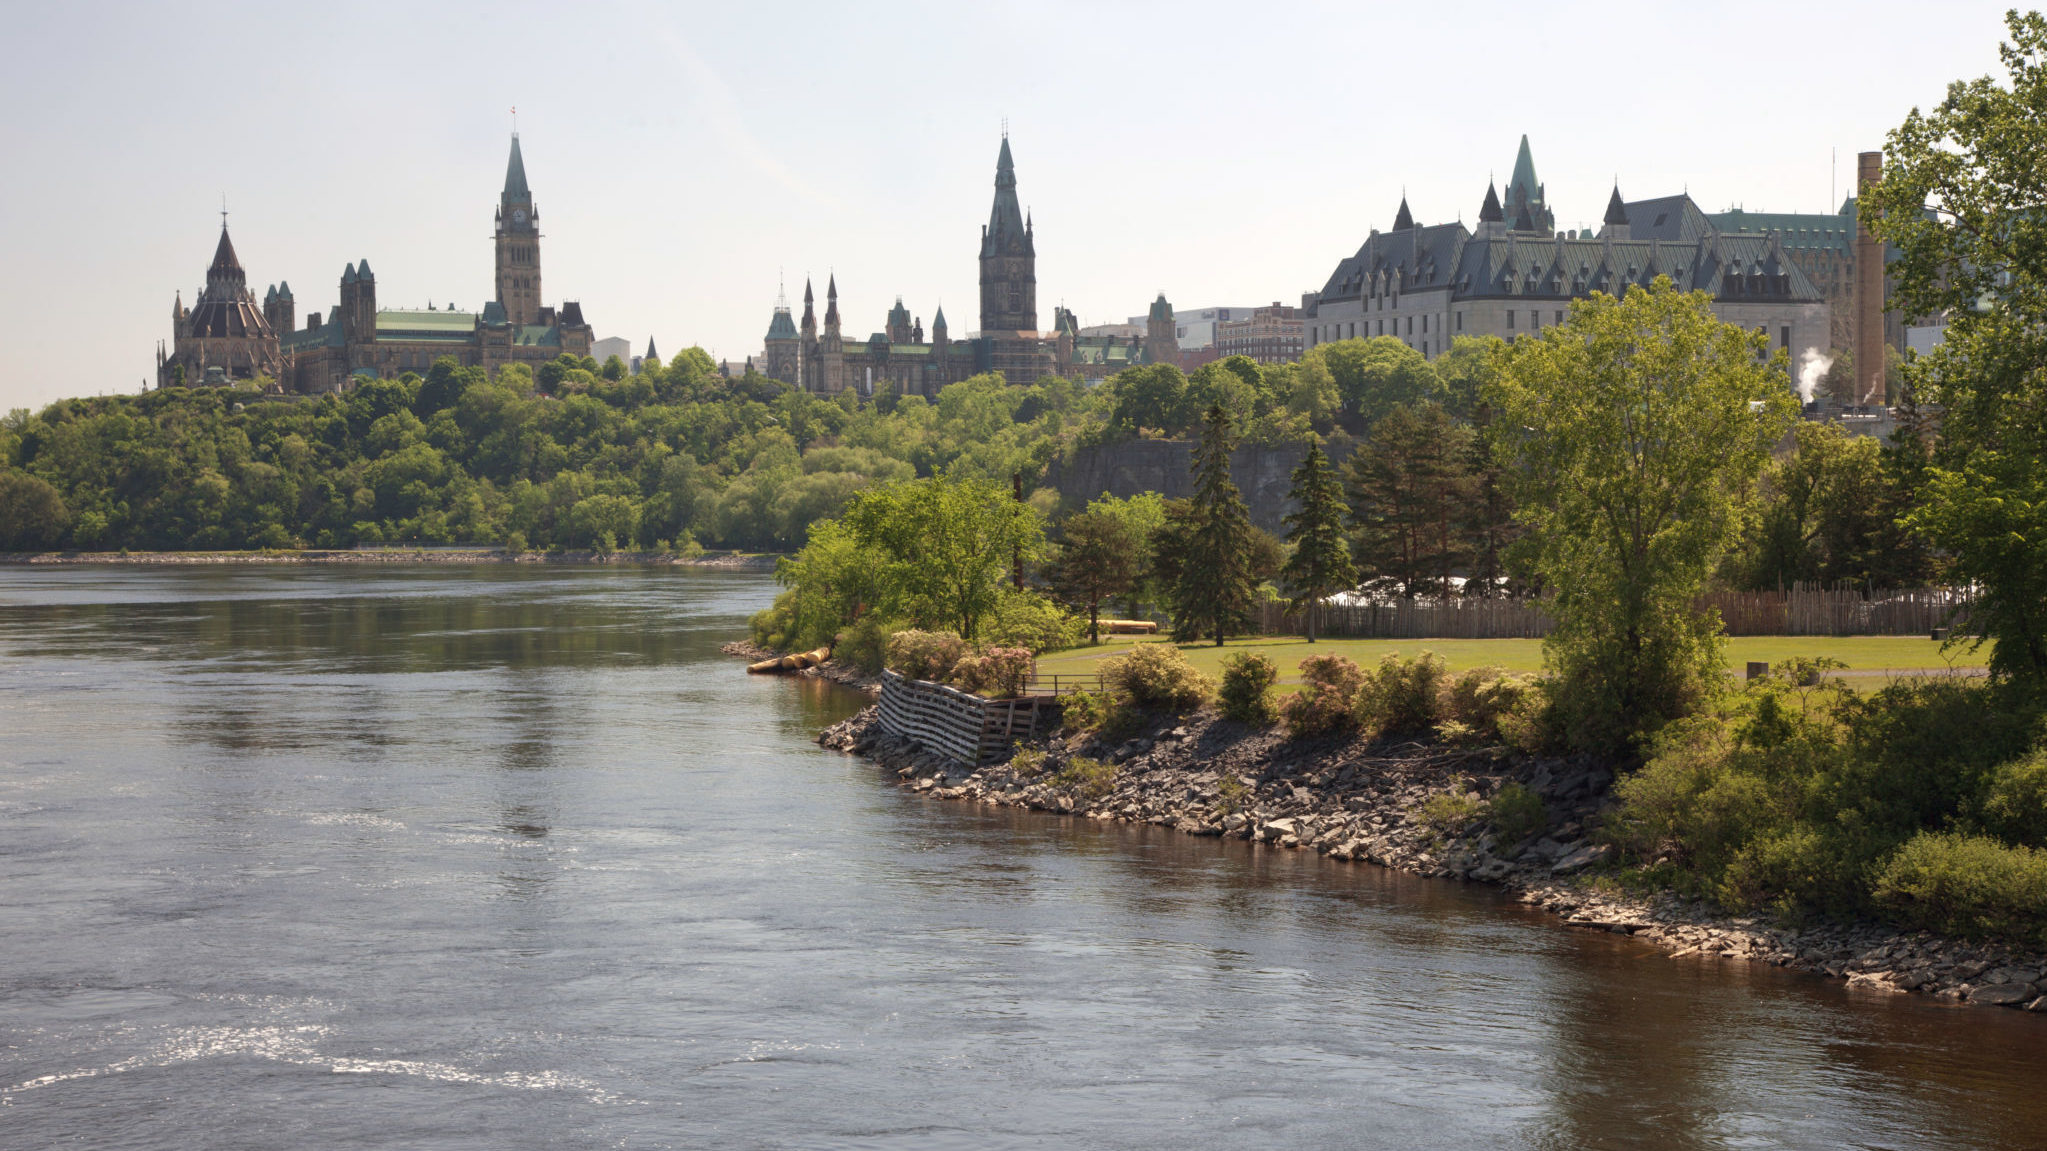 Victoria Island in the summer, with Parliament Hill and the Supreme Court of Canada in the background.